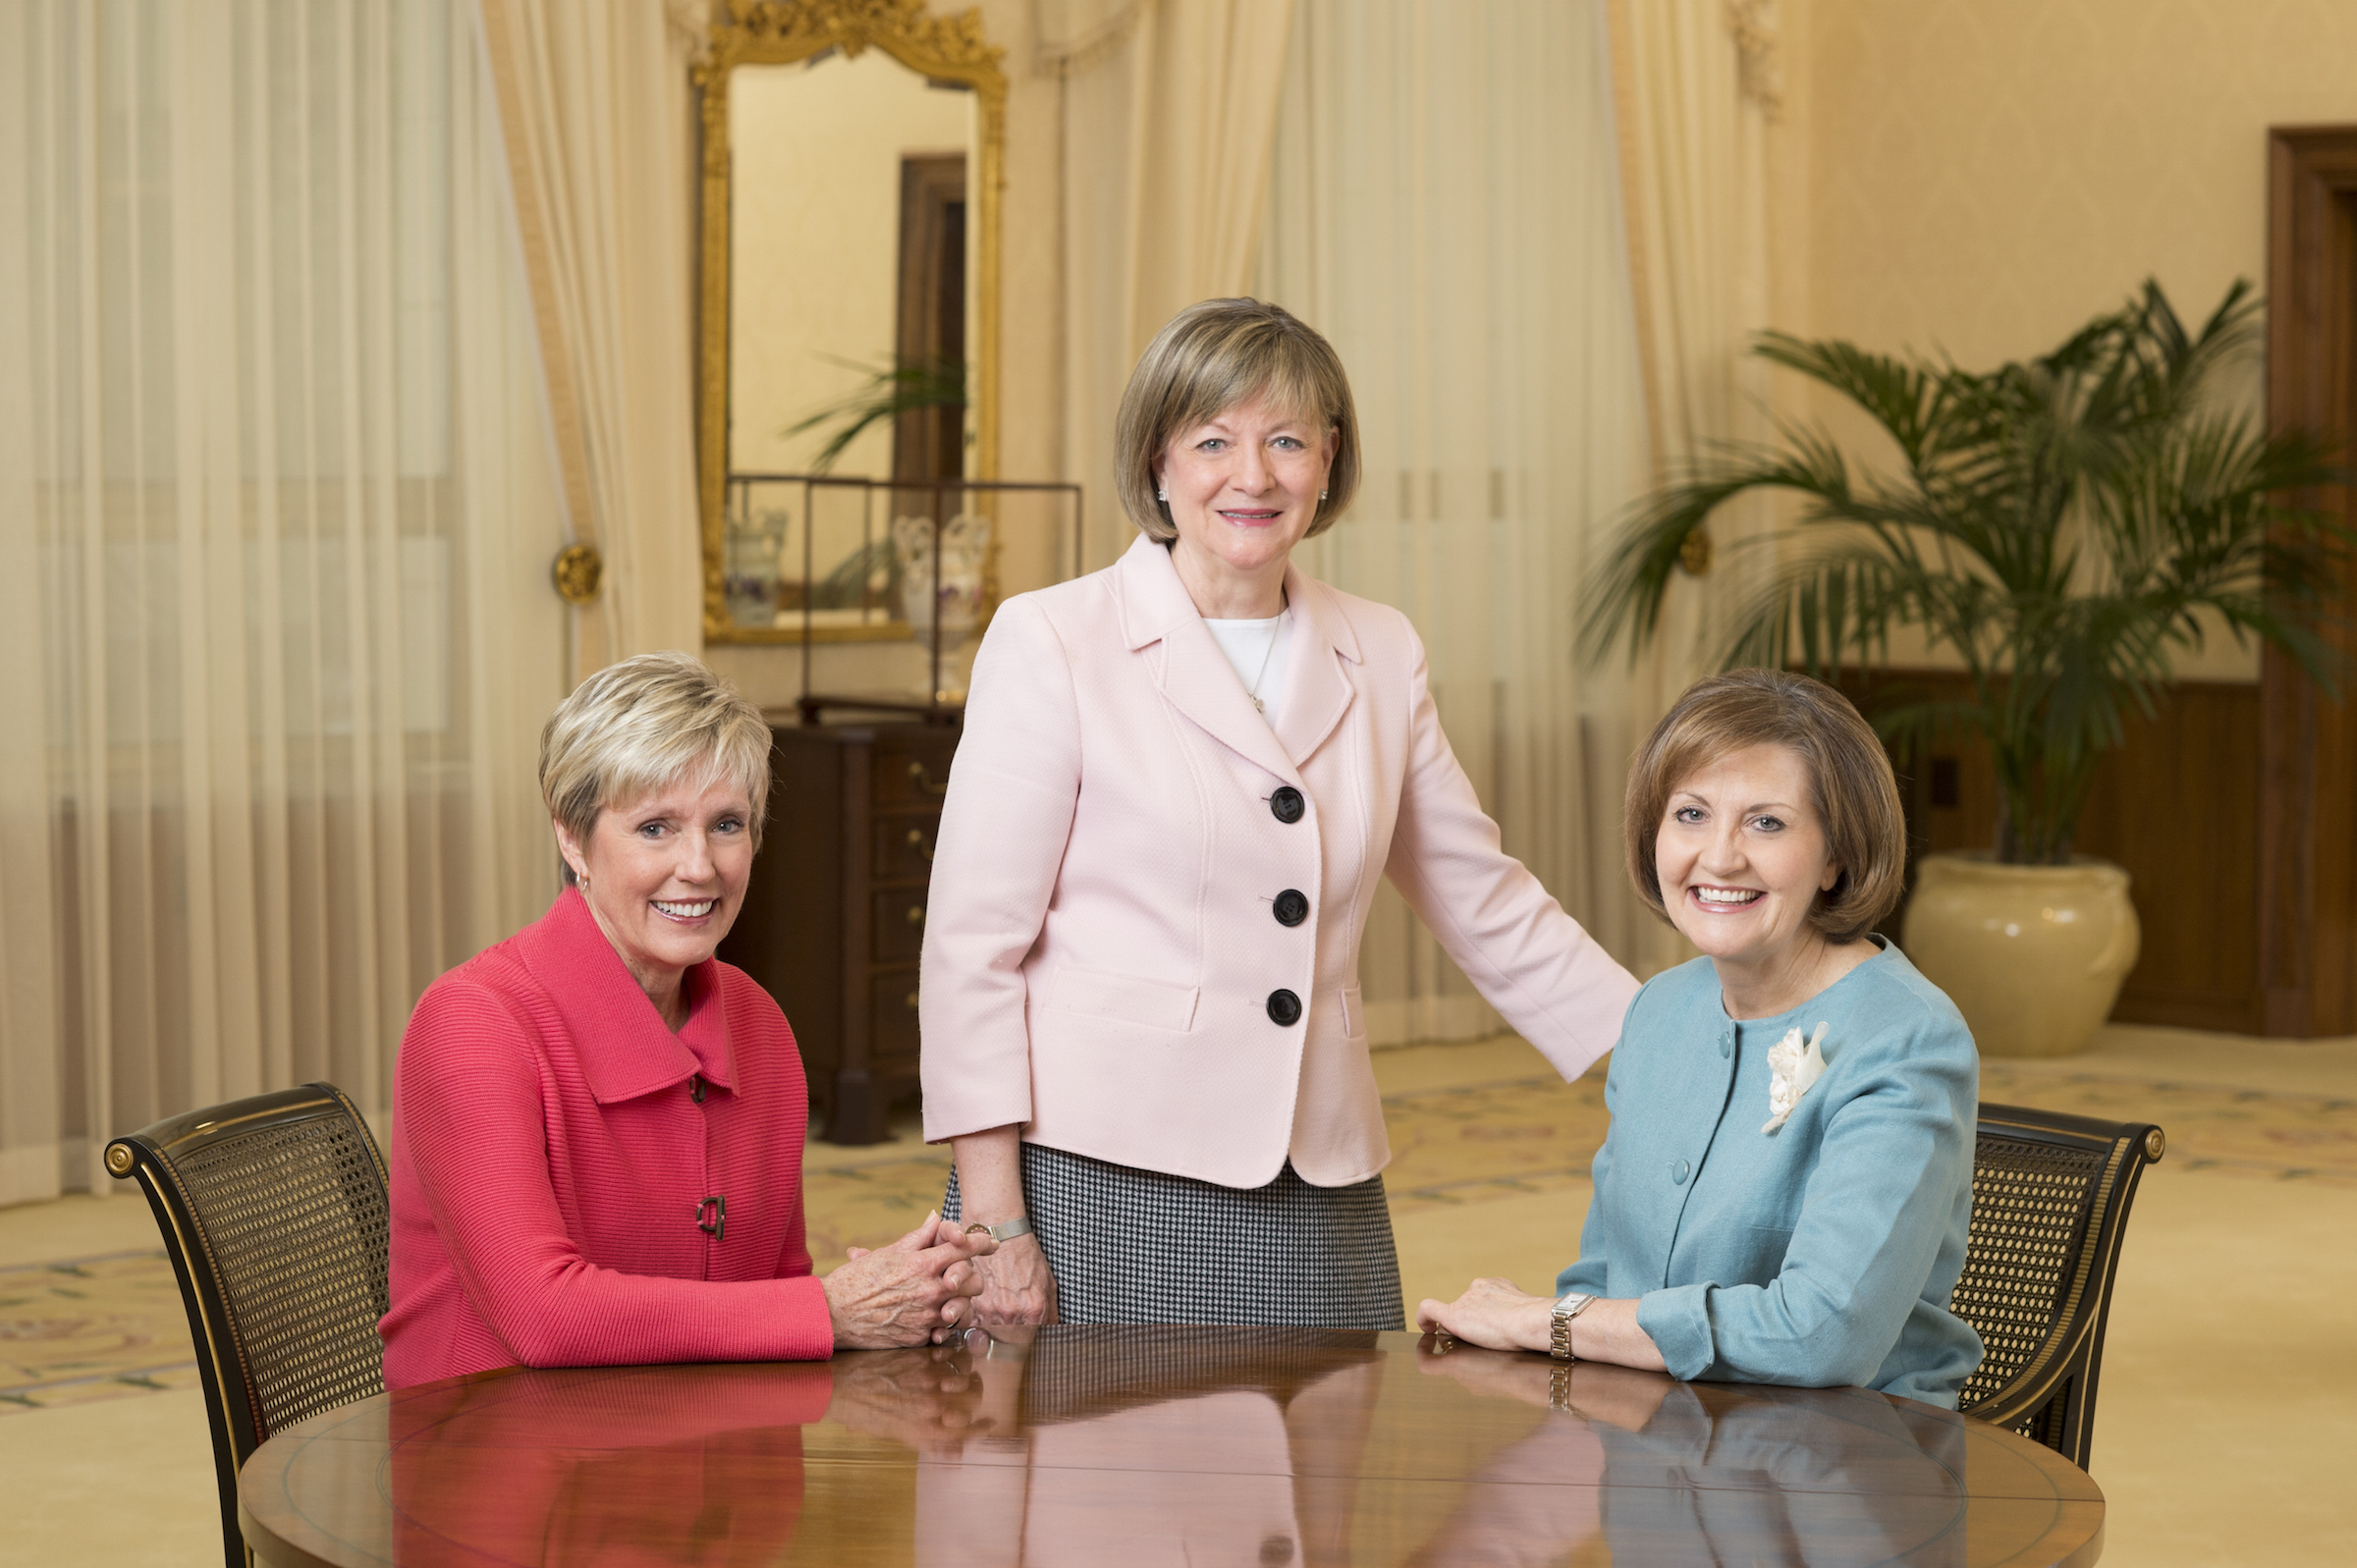 Presidents of the auxiliary organizations of The Church of Jesus Christ of Latter-day Saints are (left to right) Sister Rosemary M. Wixom, Primary general president; Sister Bonnie L. Oscarson, Young Women general president; and Sister Linda K. Burton, Relief Society general president. (Mormon Newsroom)